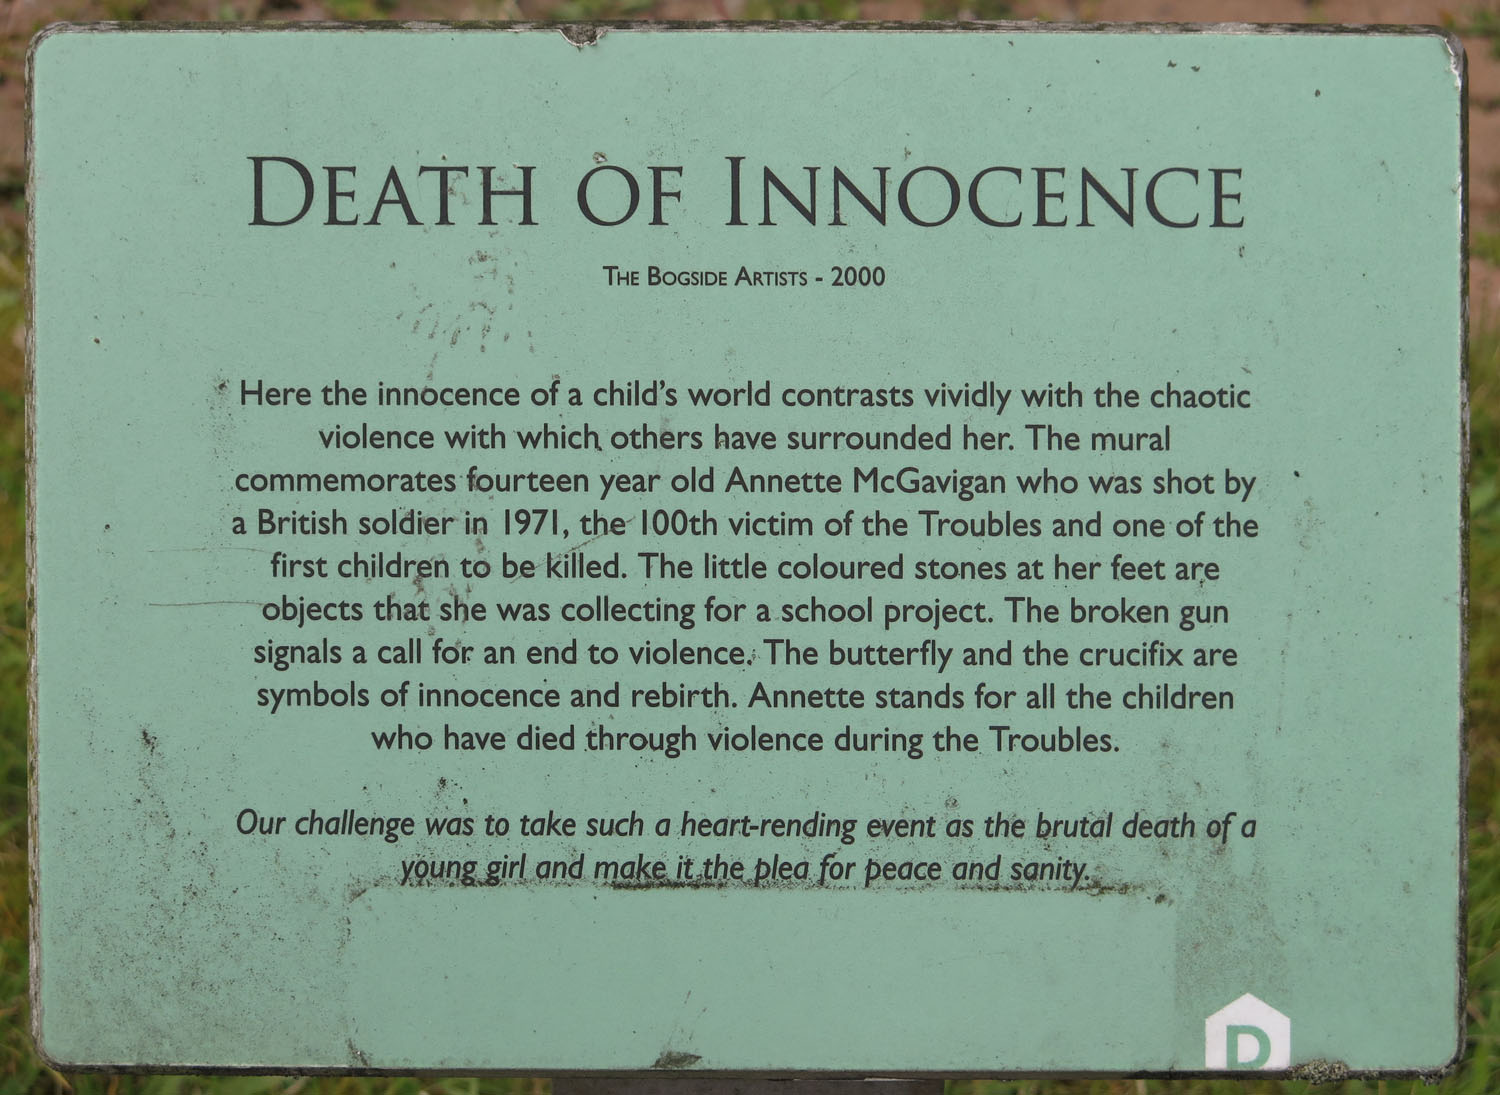 Northern-Ireland-Derry-Londonderry-Death-Of-Innocence